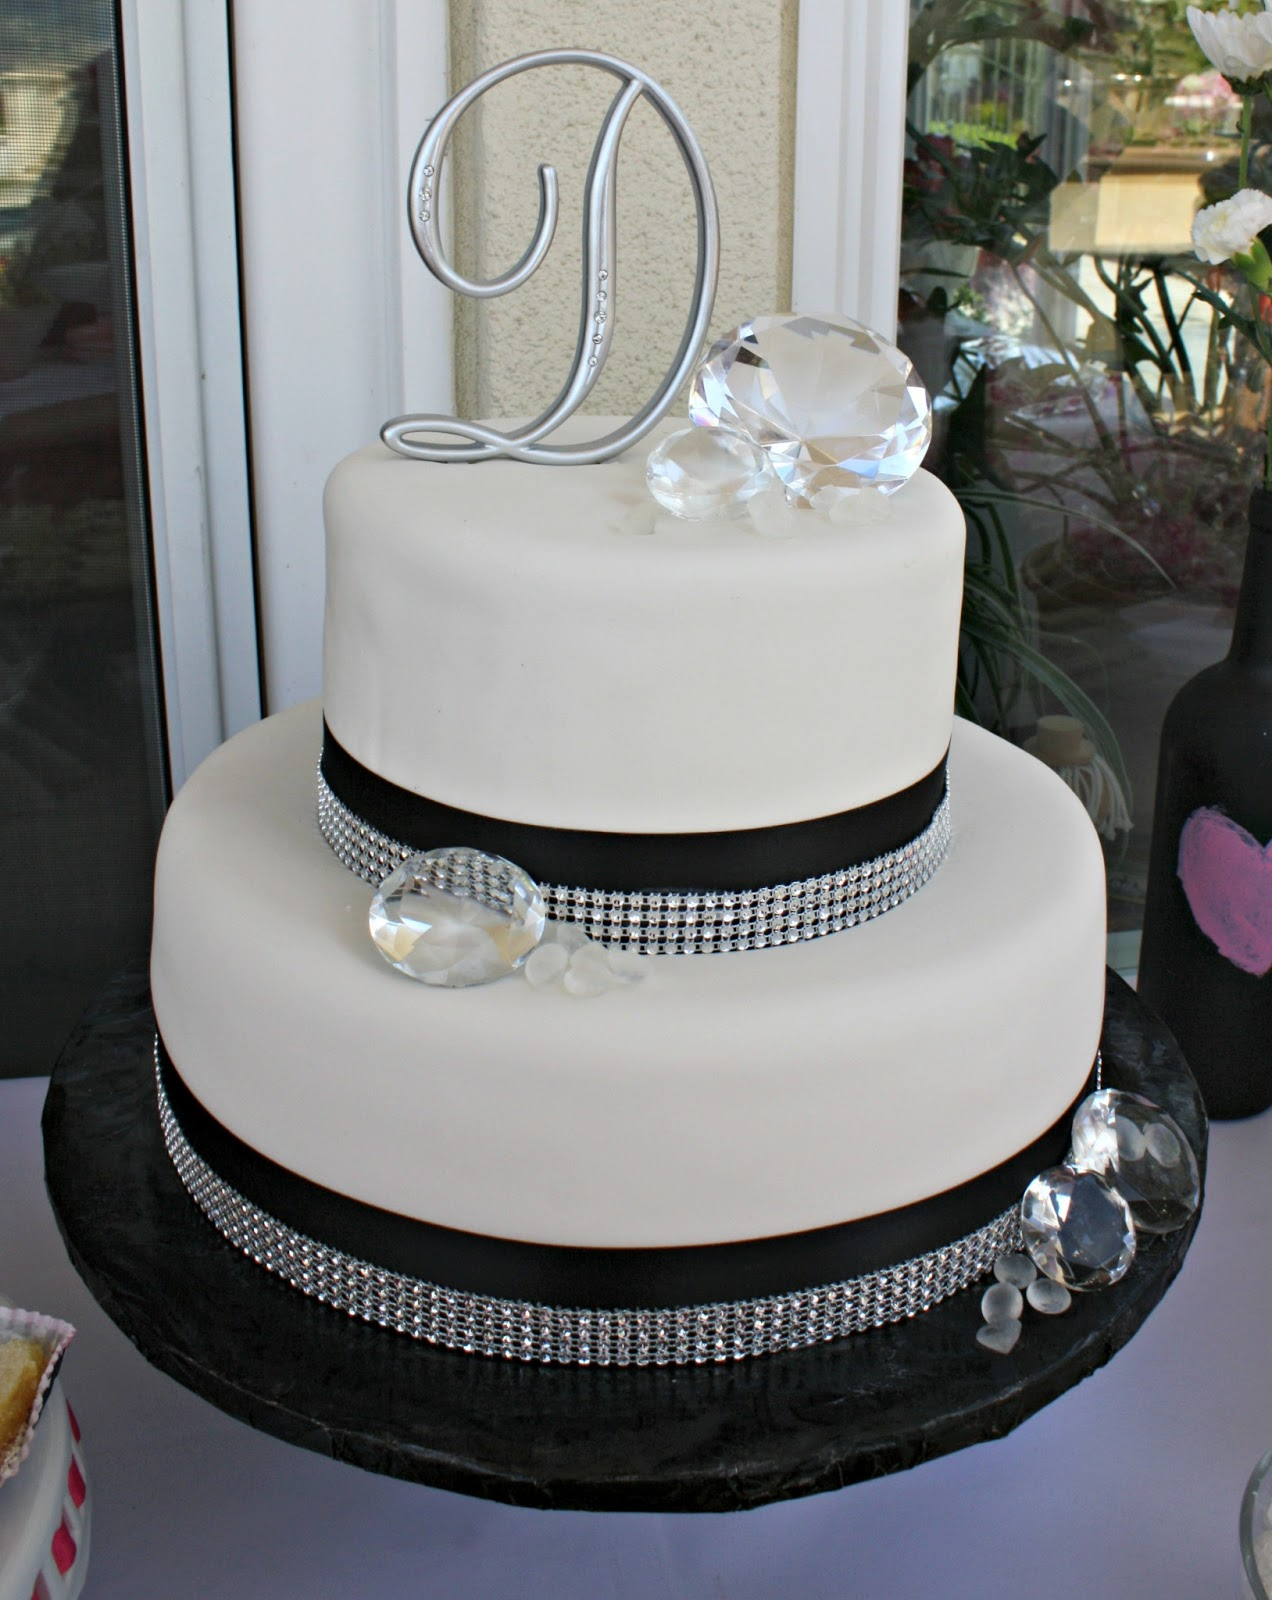 10 Shower Black And White Wedding Cakes Photo - Black and White ...